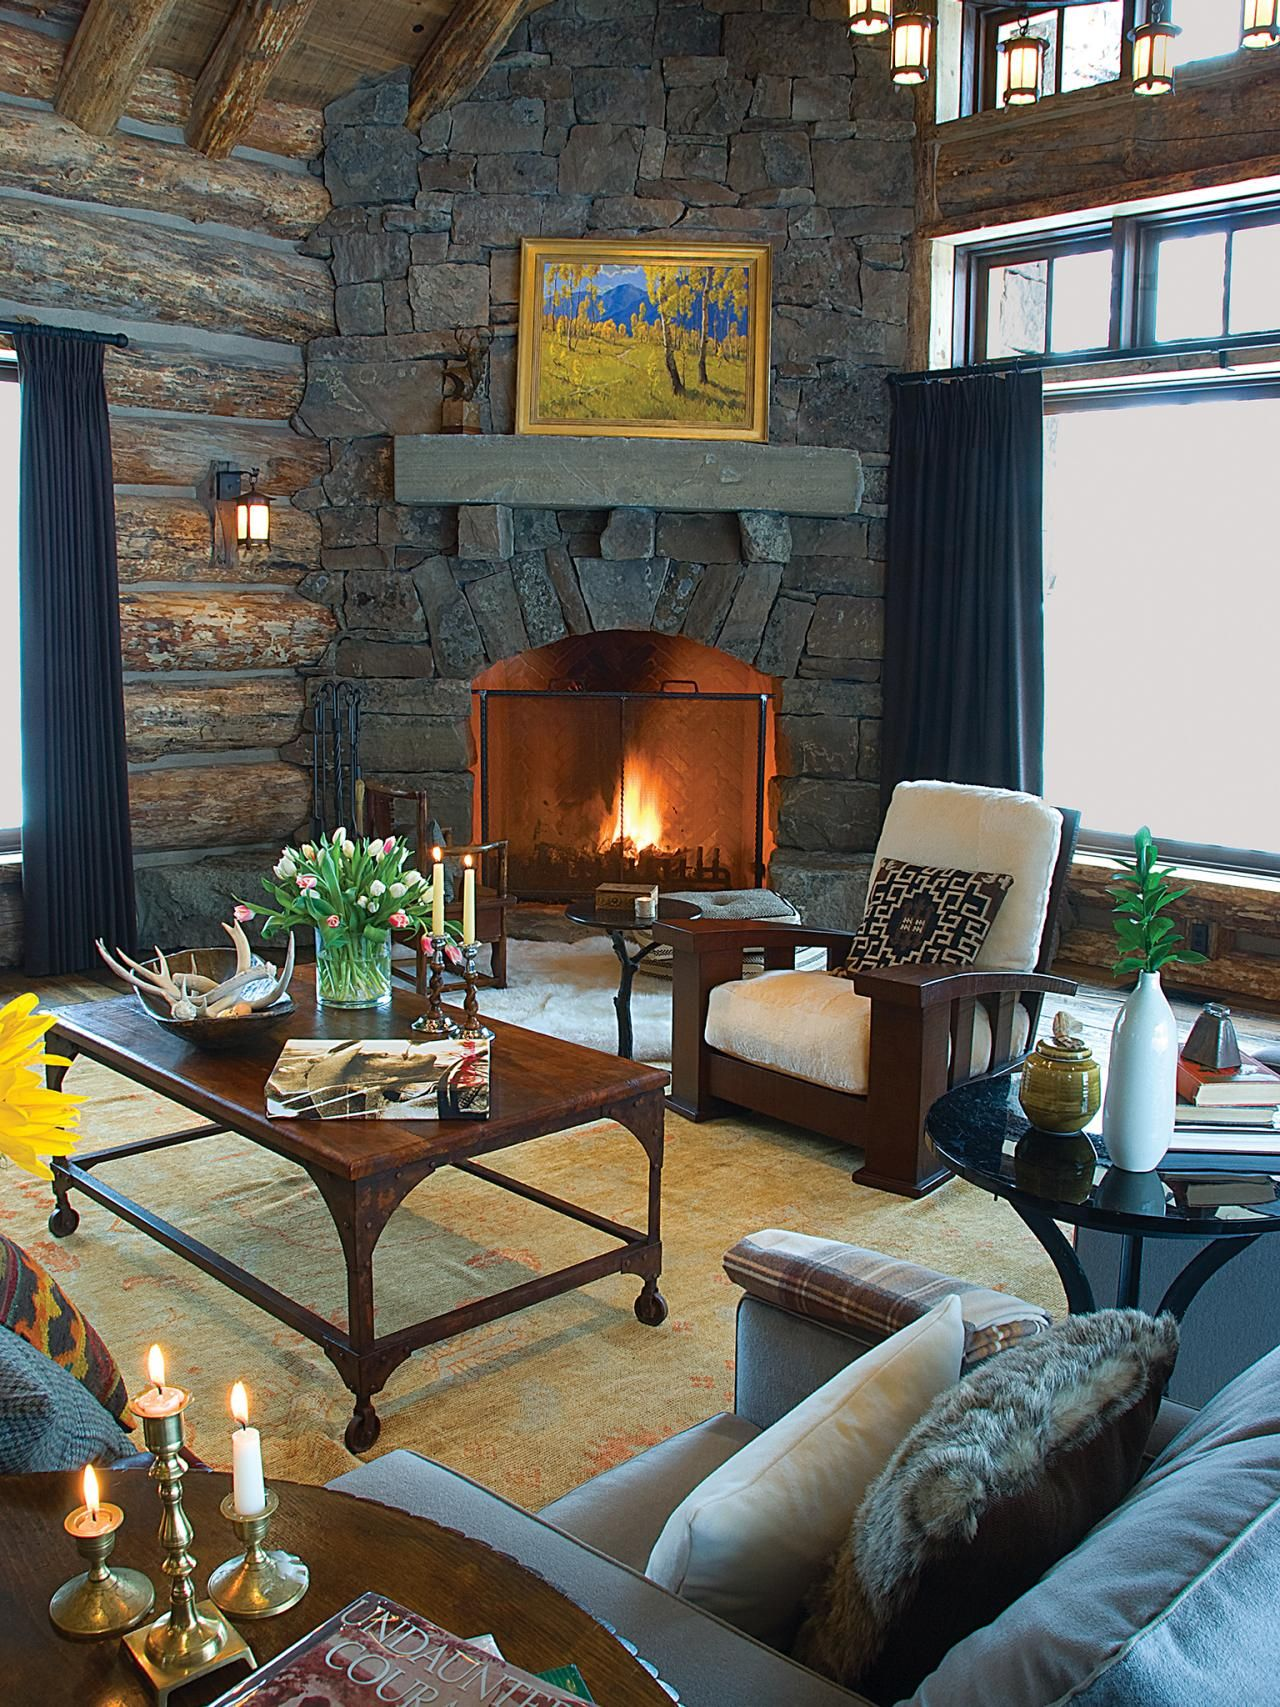 42 Ideas For Living Room Small Rustic Beams Livingroom: This Rustic Great Room Has Vaulted Ceilings, Eclectic